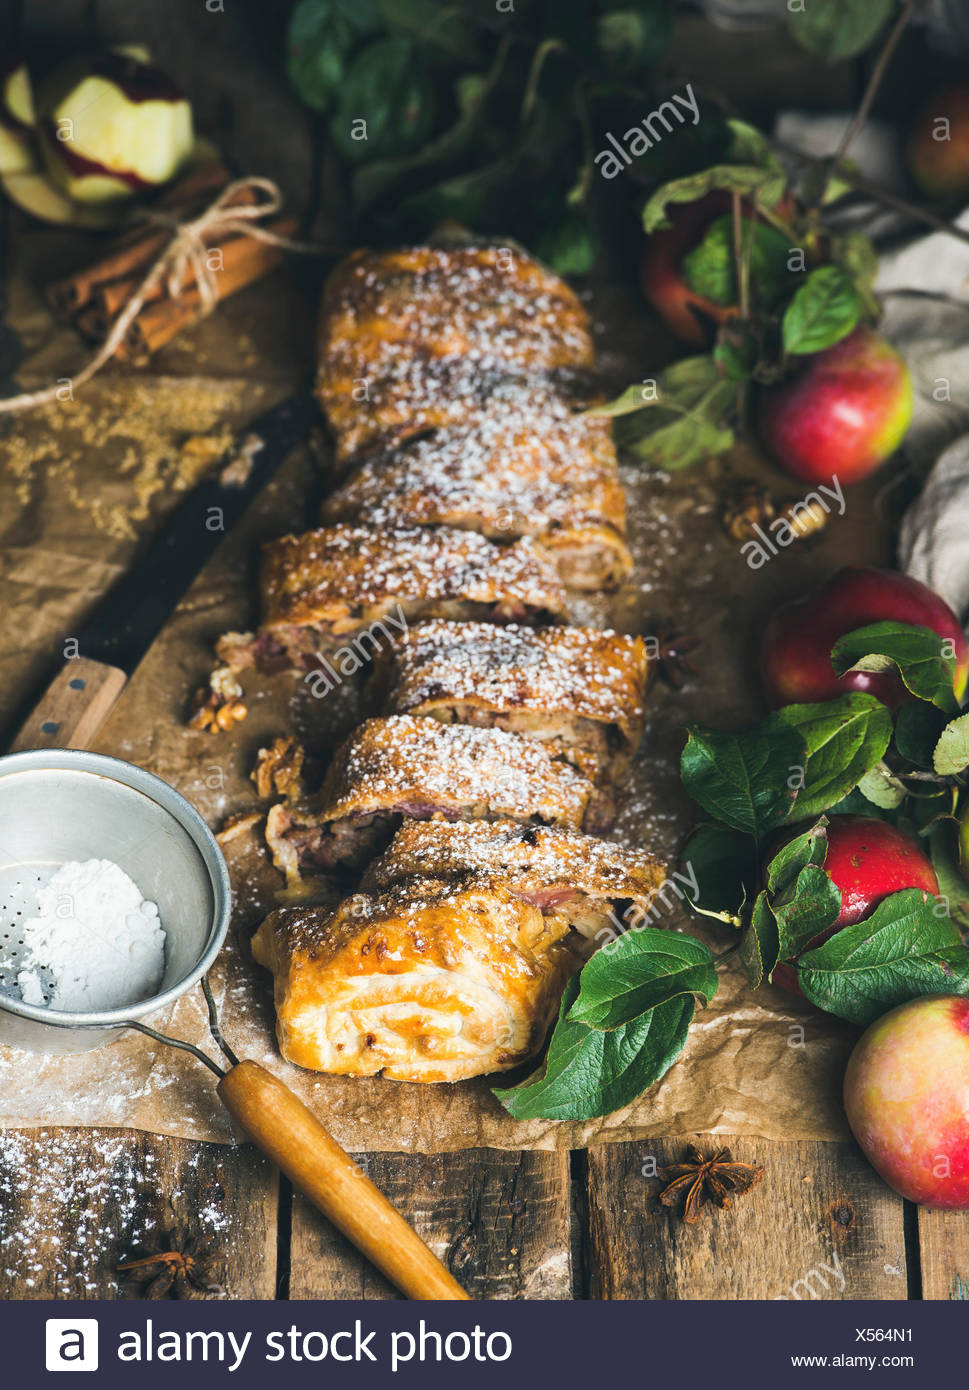 Apple strudel cake with cinnamon, sugar powder and fresh apples on rustic wooden table background, selective focus, vertical com - Stock Image